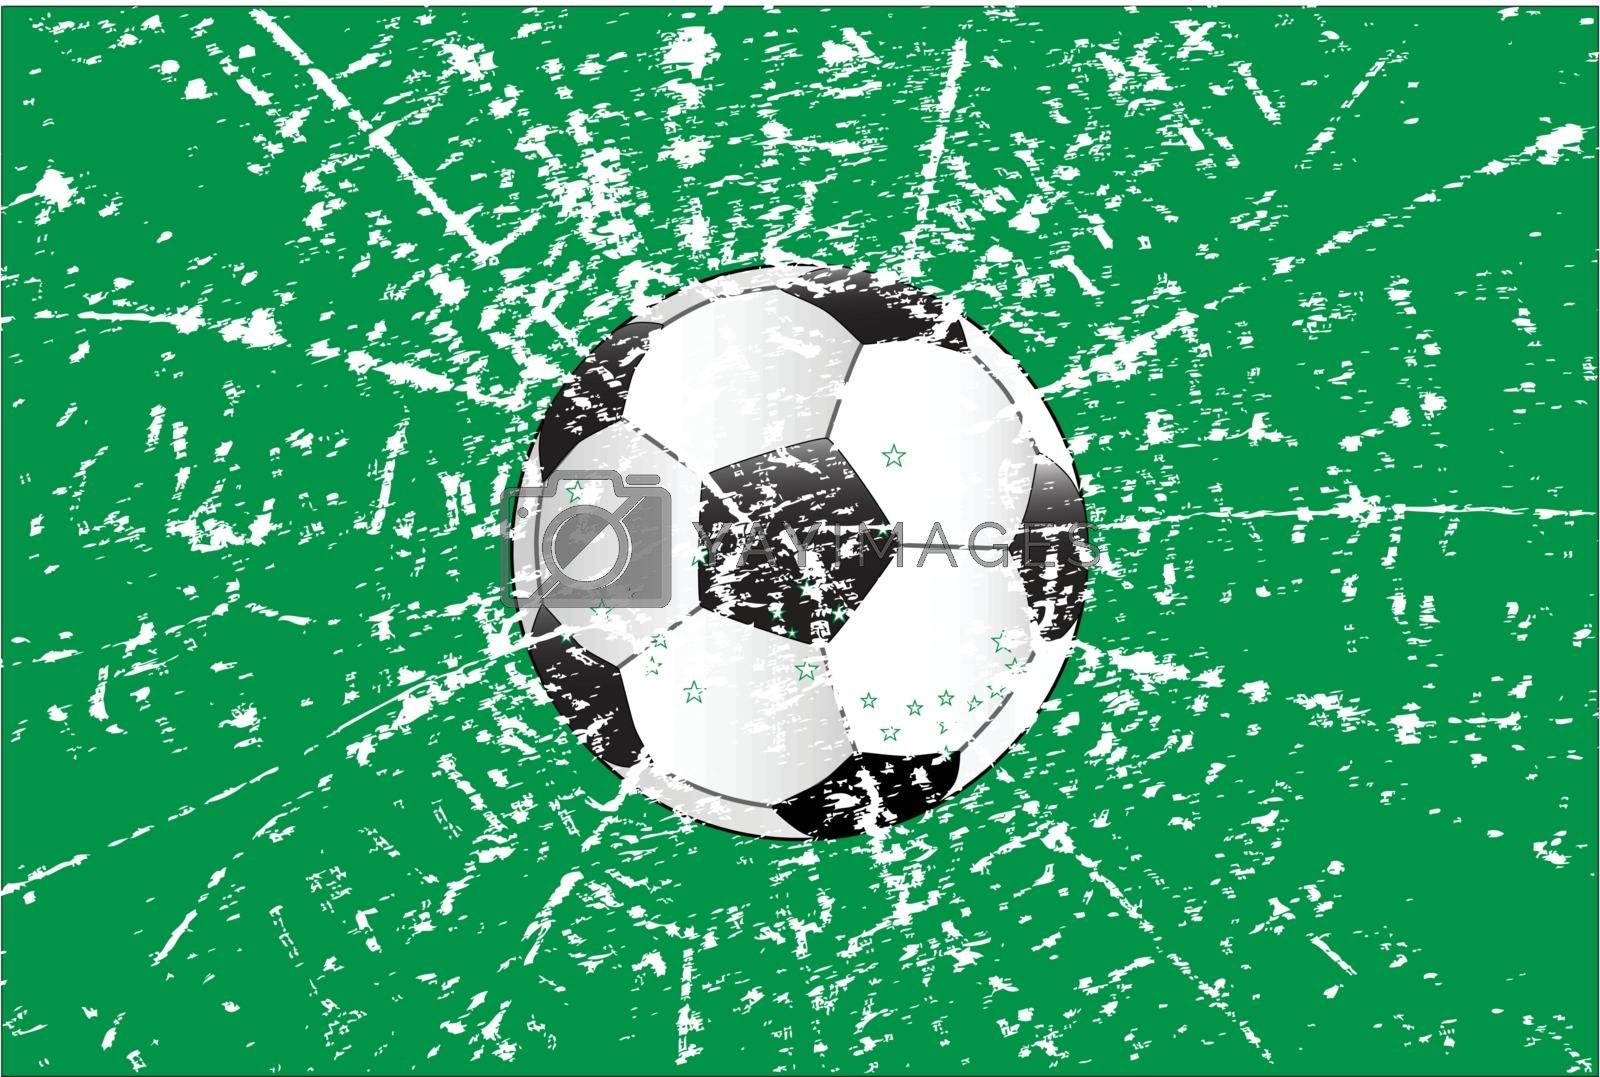 Typical football with a blue and white splatter style grunge background